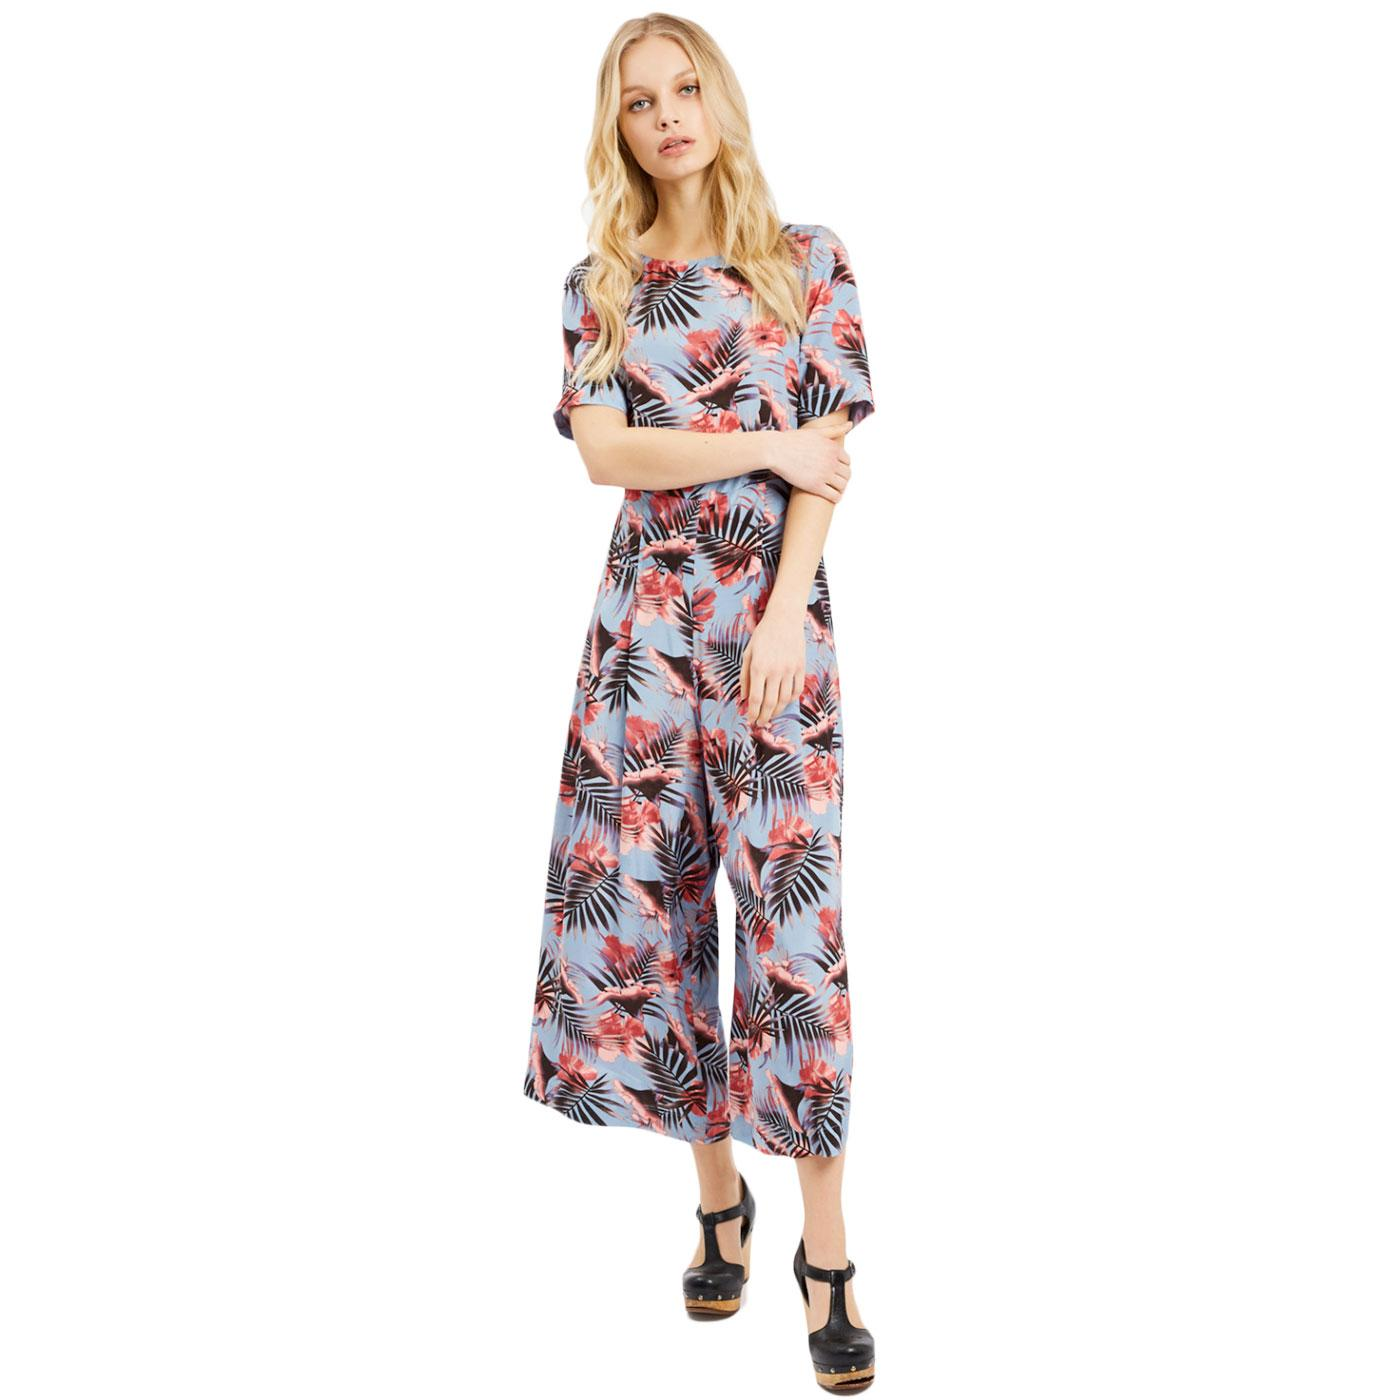 Bianca TRAFFIC PEOPLE Retro 70s Palm Jumpsuit